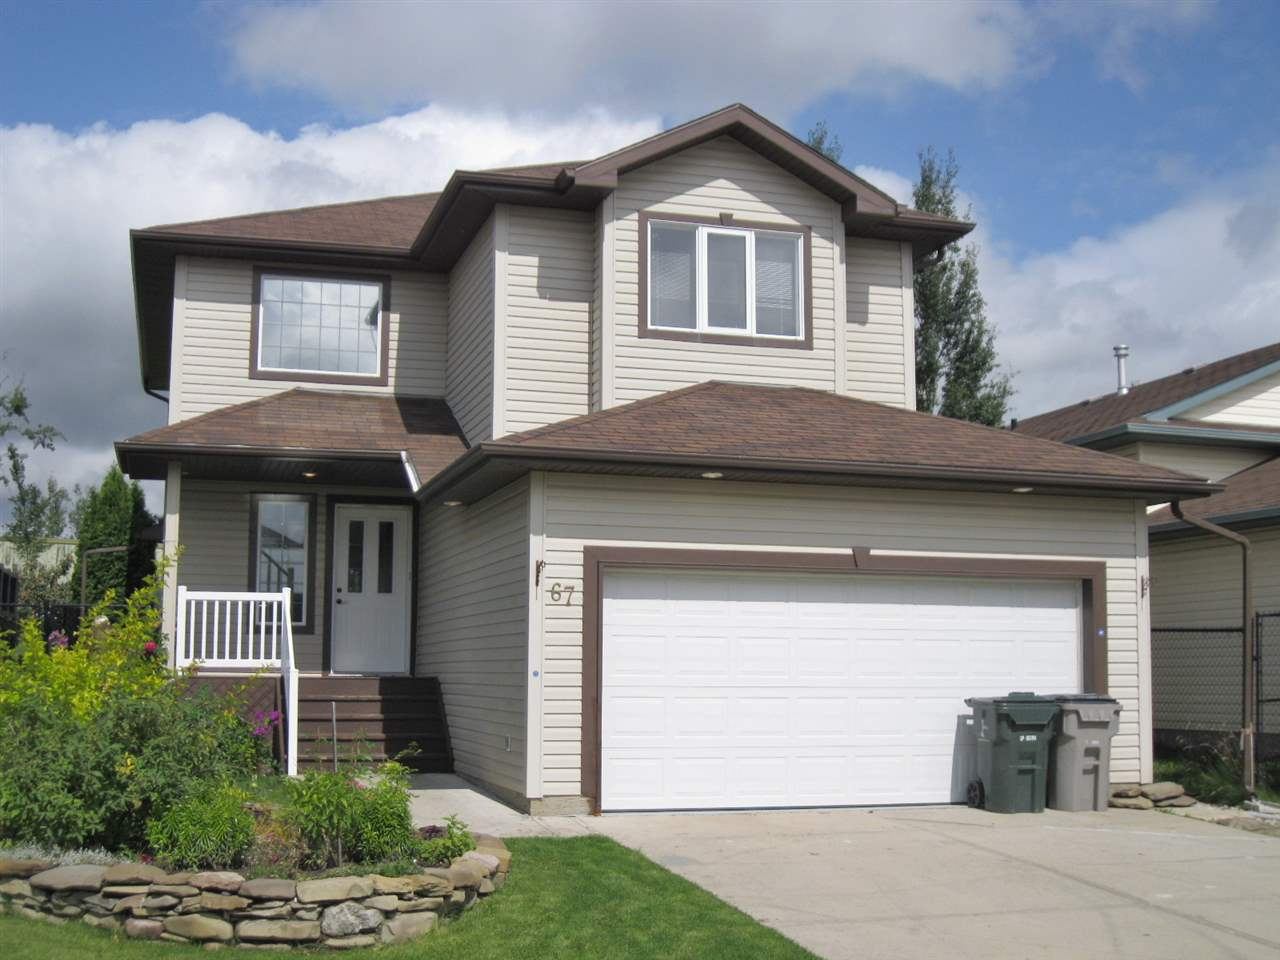 MLS® listing #E4170305 for sale located at 67 GRAYRIDGE Crescent